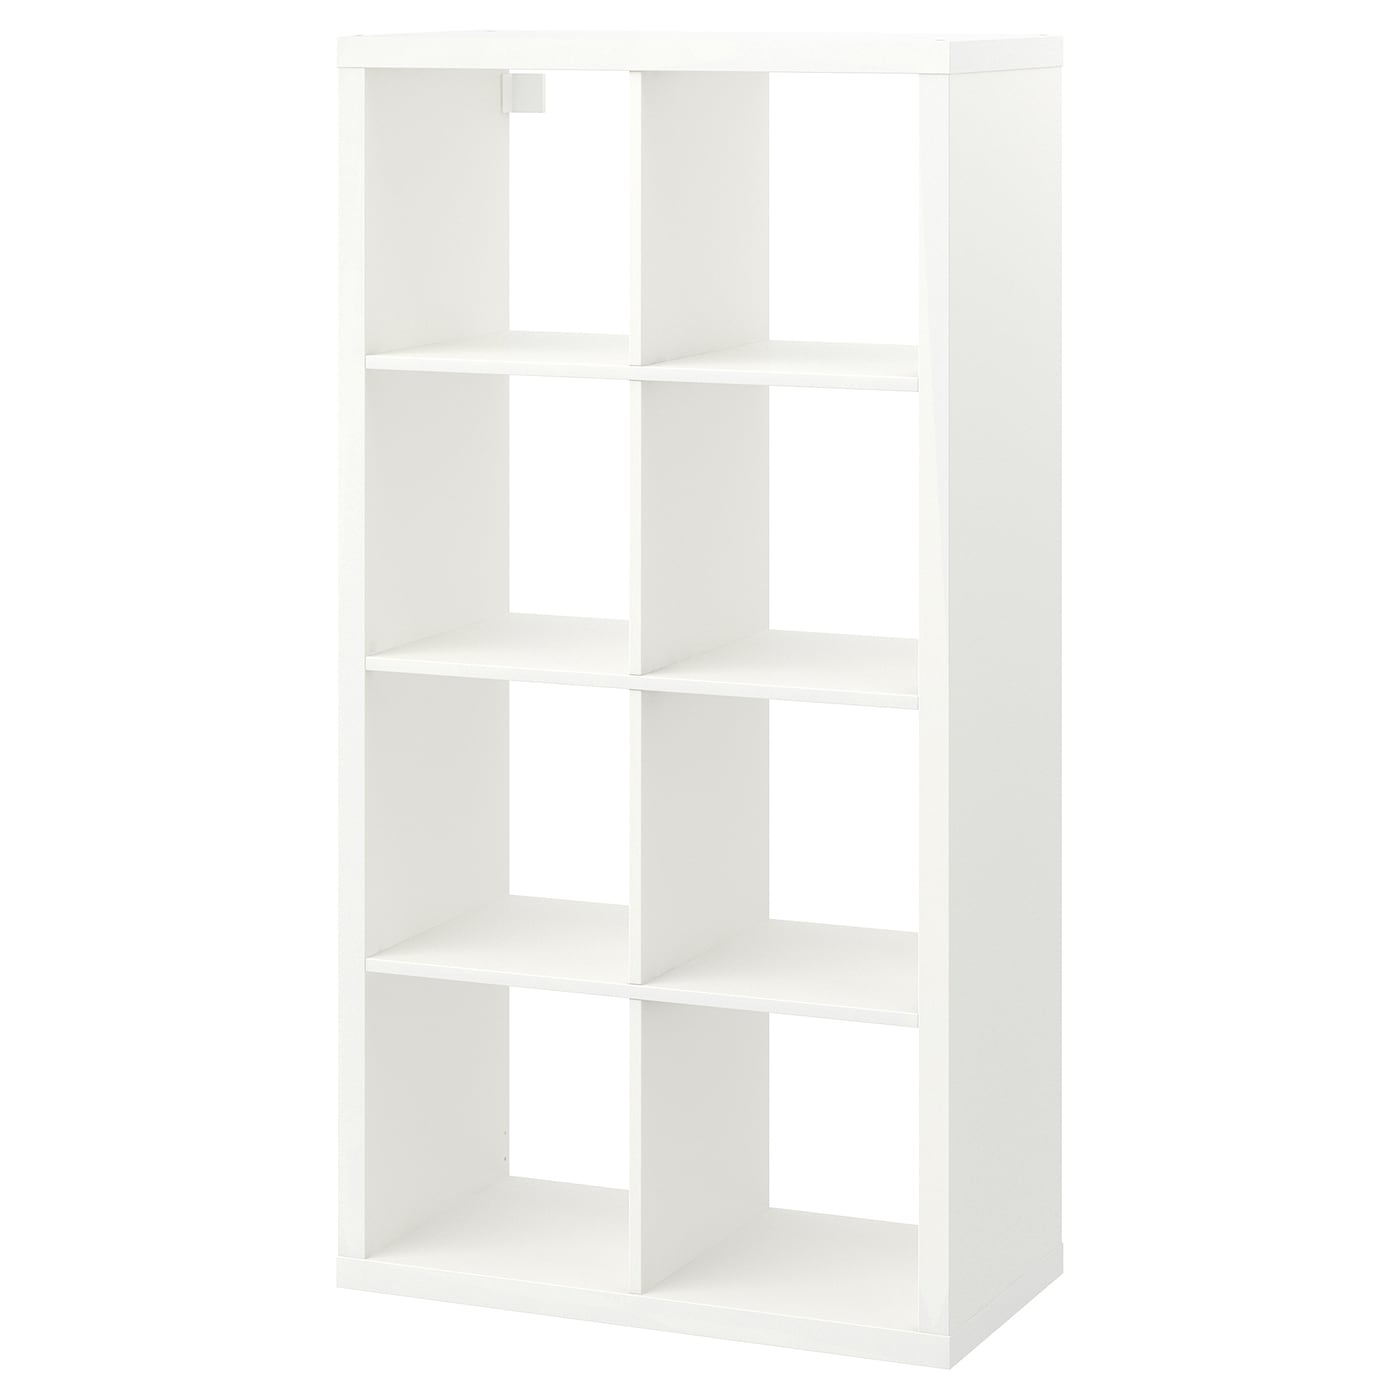 Ikea KALLAX Shelf unit, white, 30 3/8x57 7/8